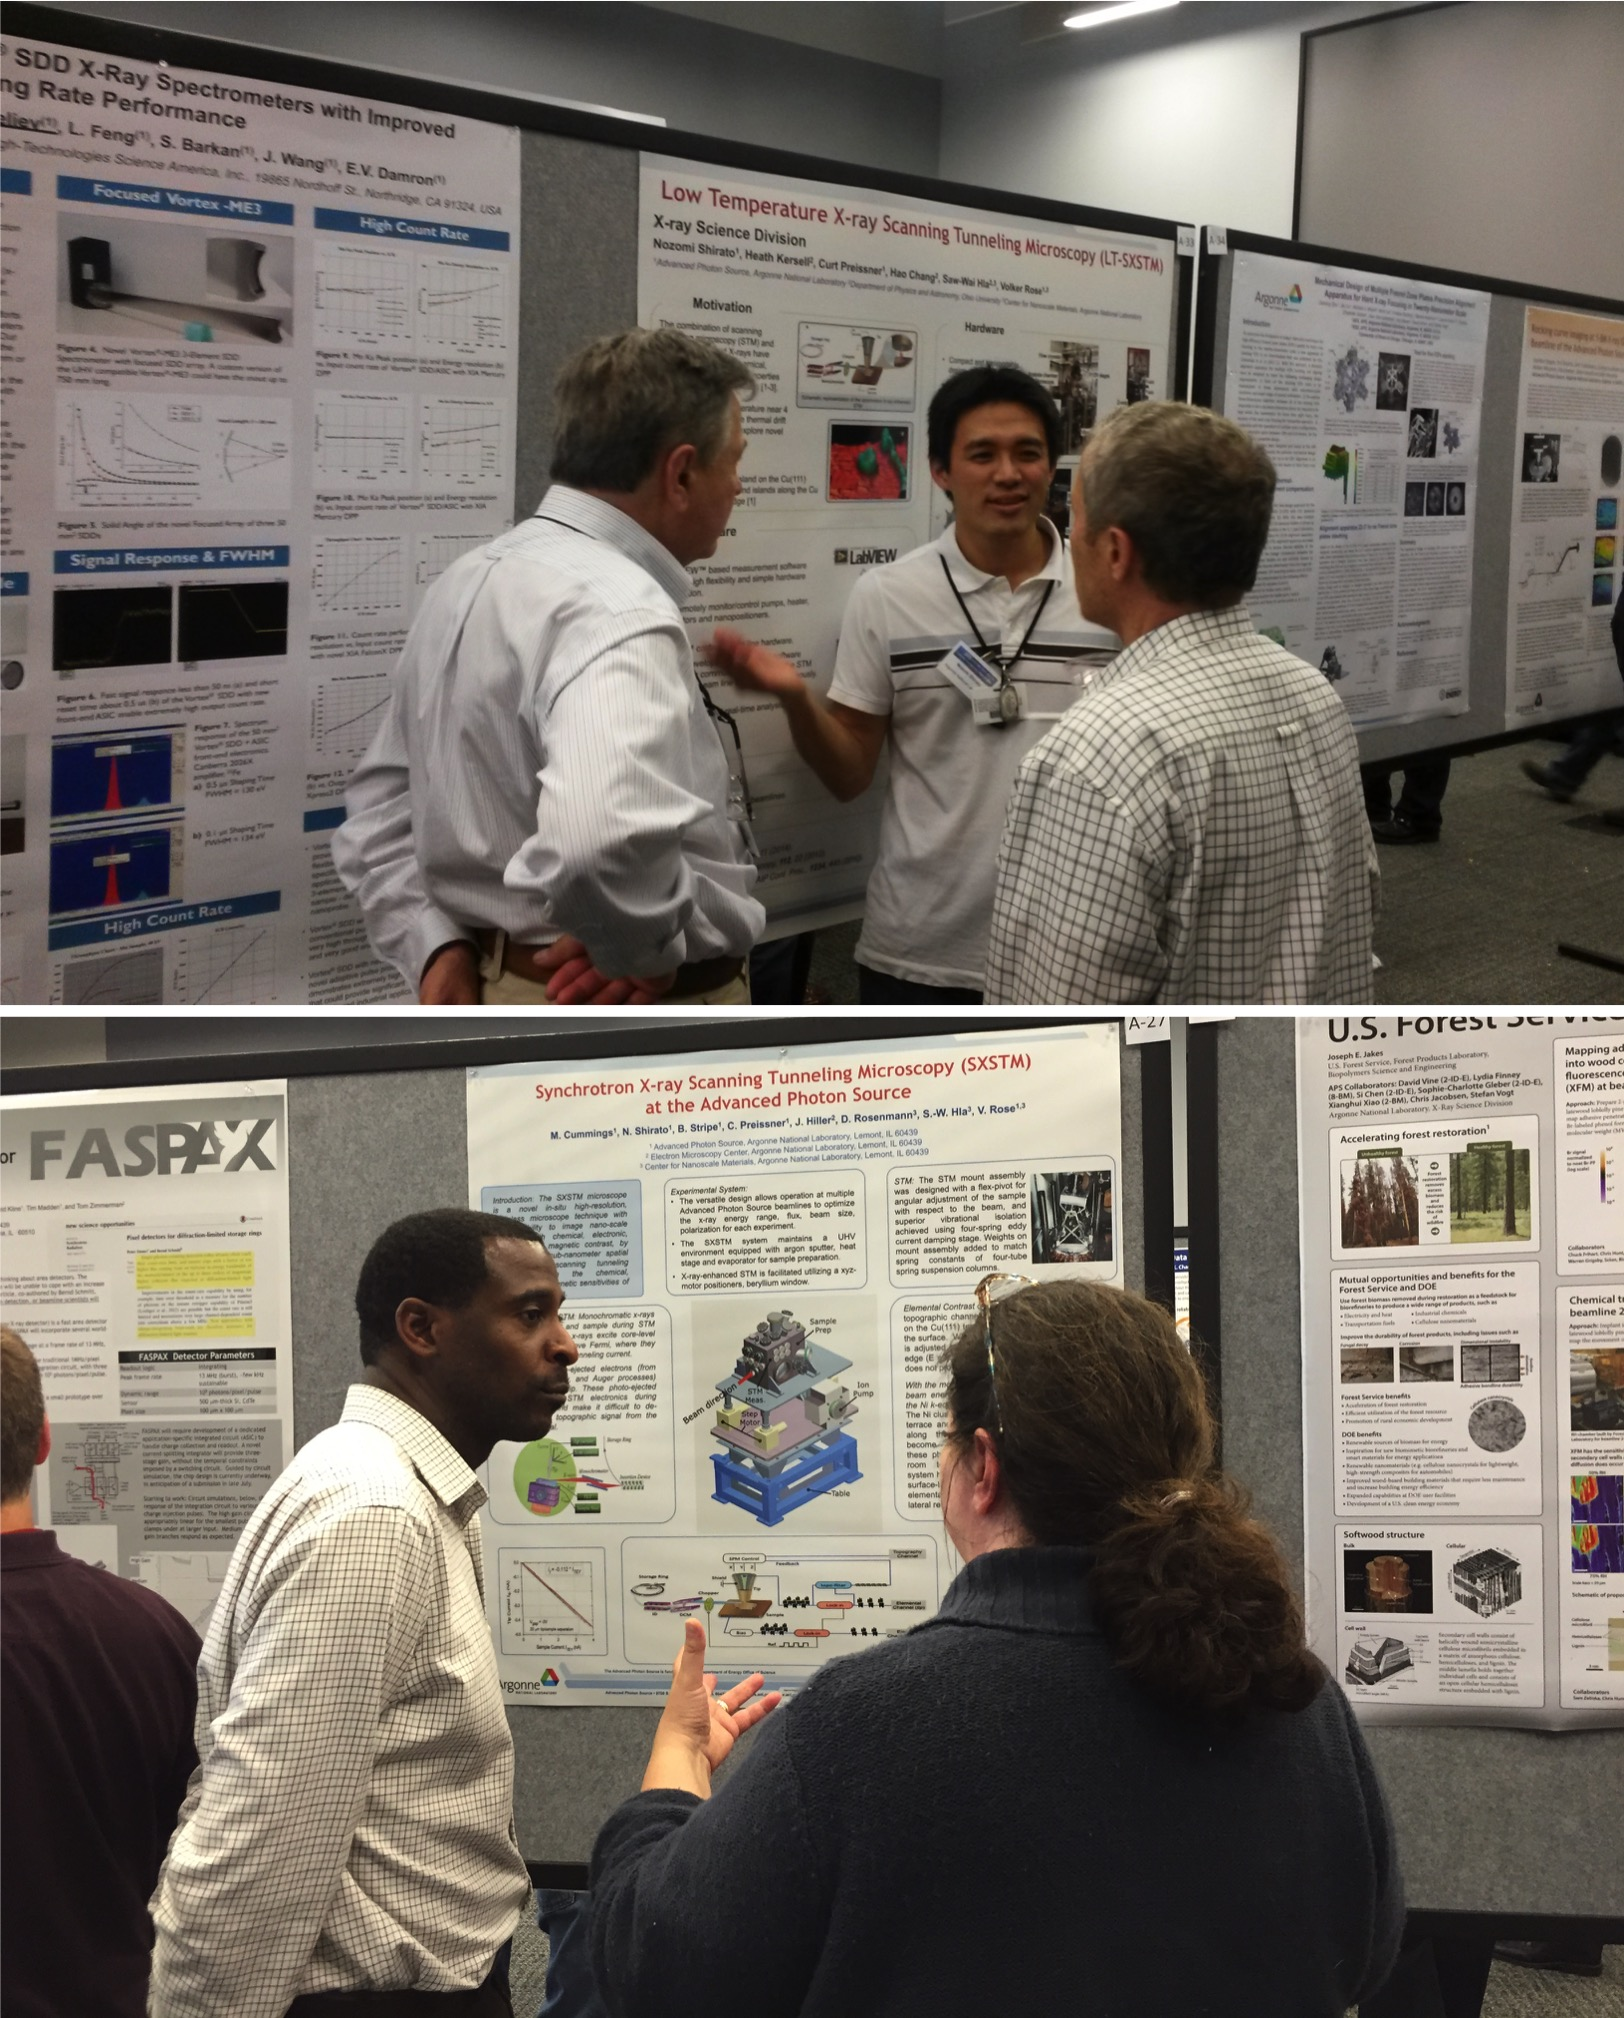 SXSPM SX-STM Marvin Cummings Nozomi Shirato poster session Users Meeting 2015